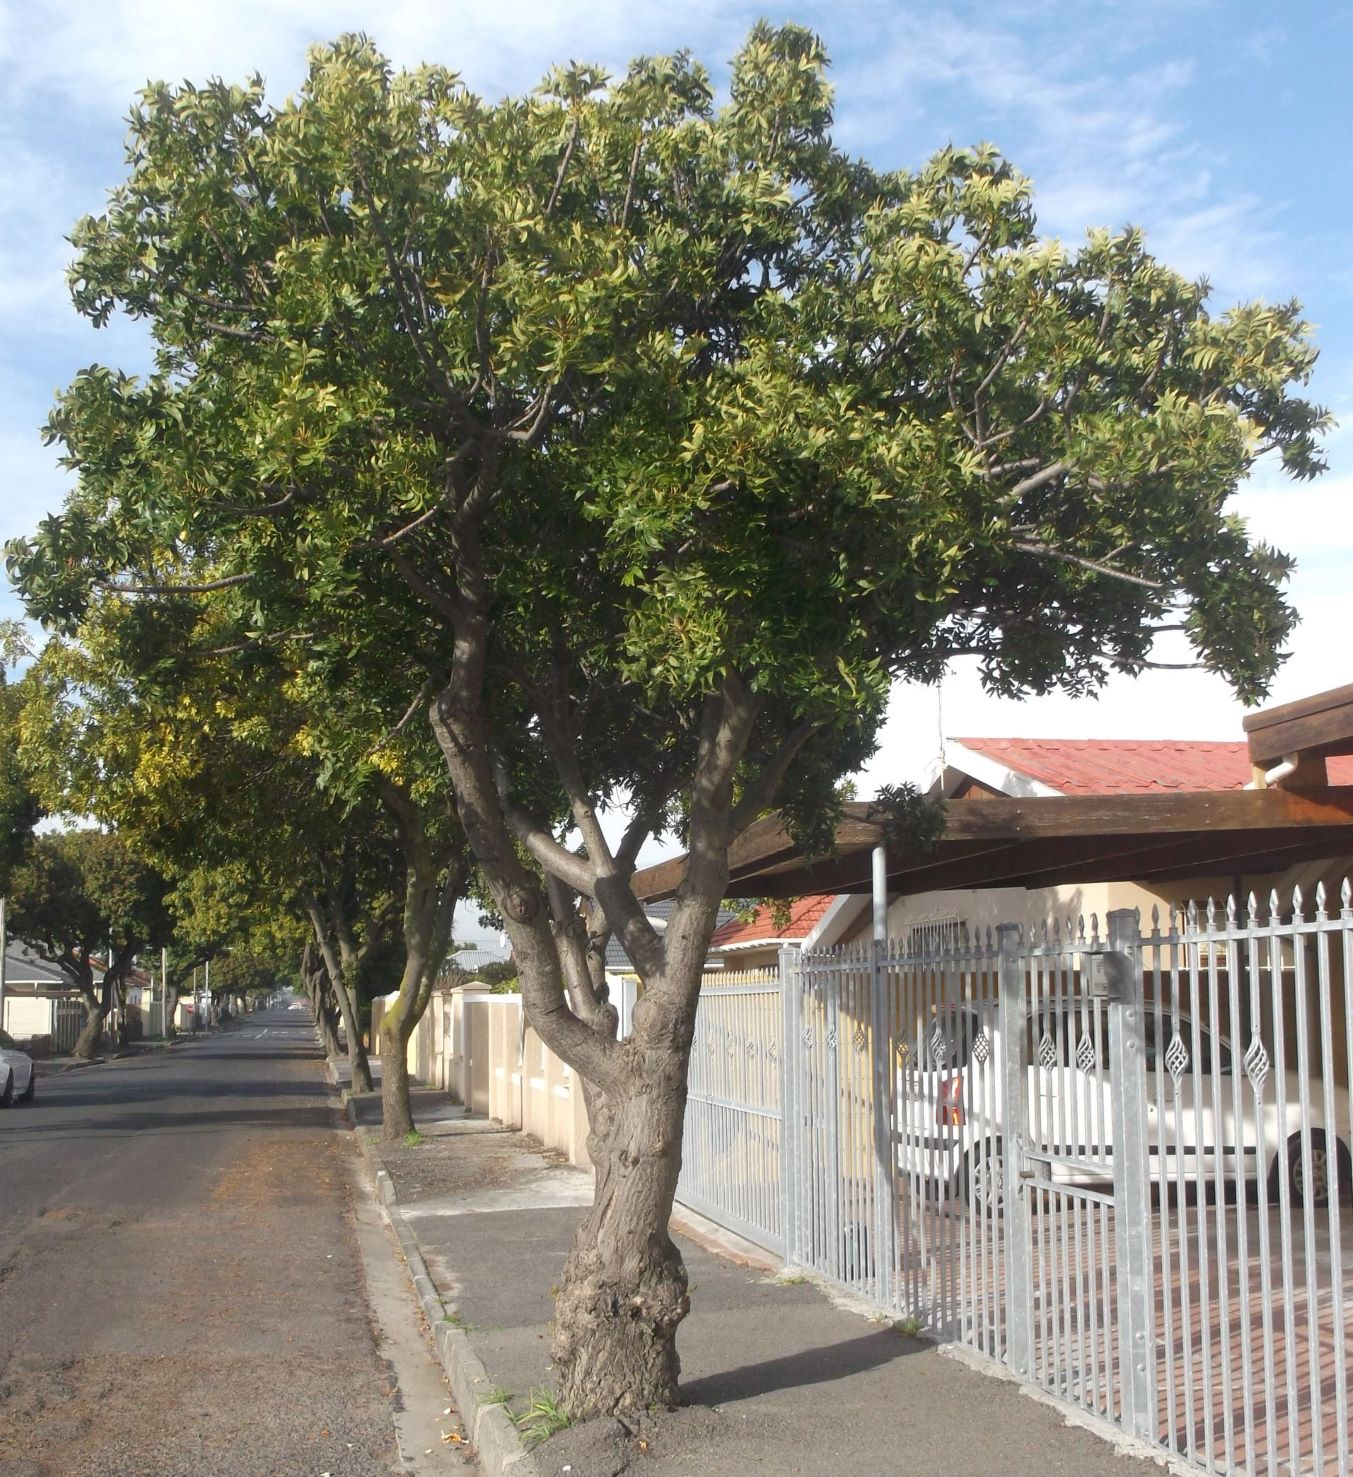 A whole street of African wild plum trees in Goodwood